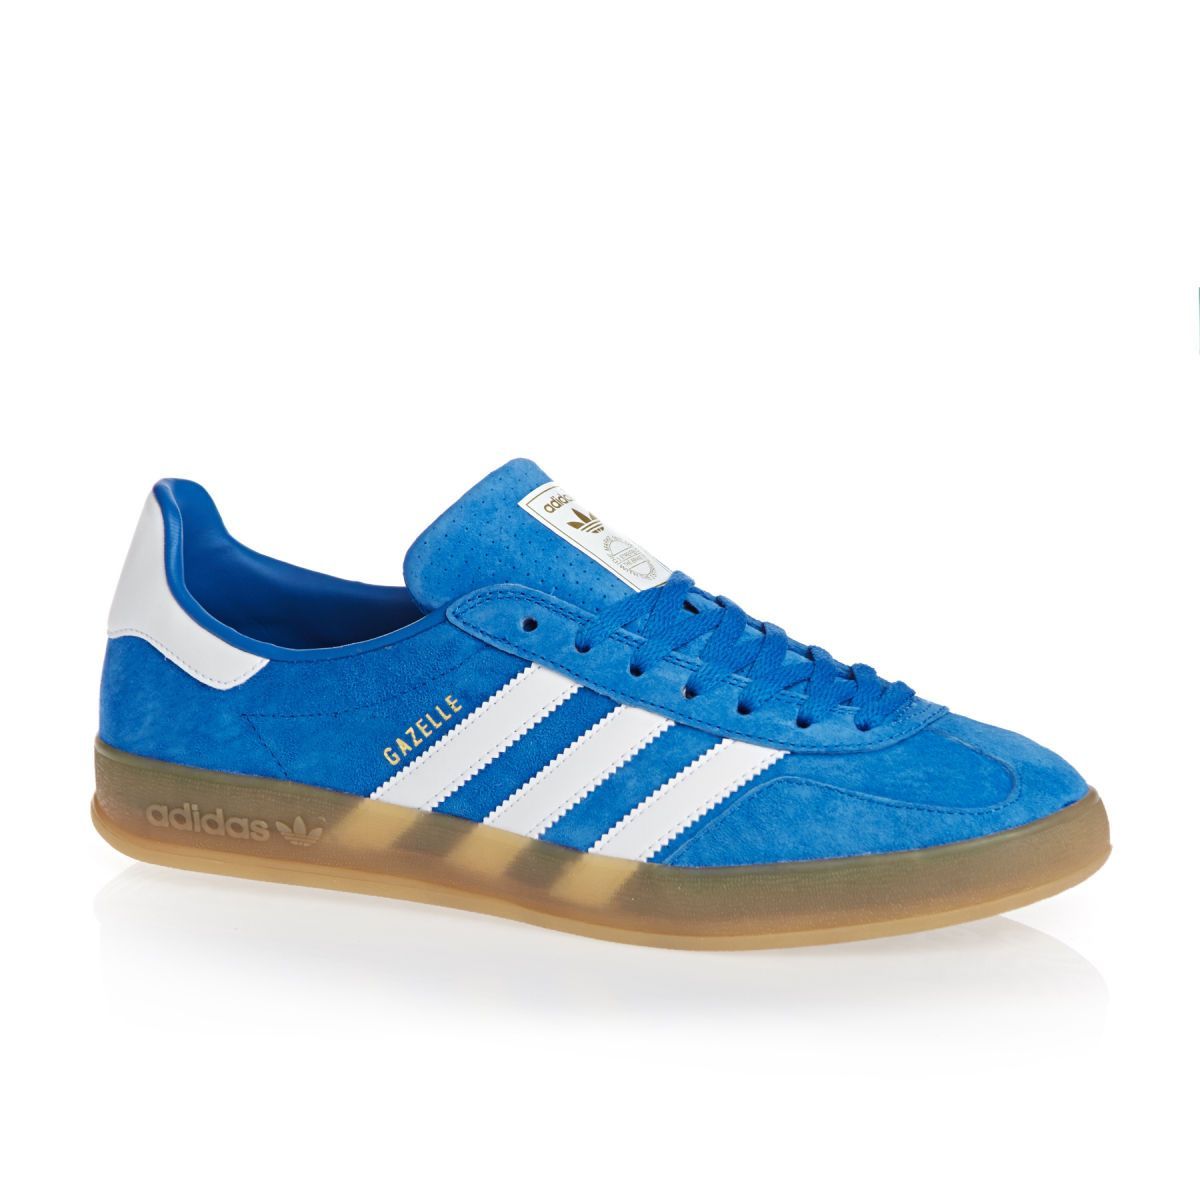 adidas originals Gazelle Indoor Shoes - Bluebird/white/gum